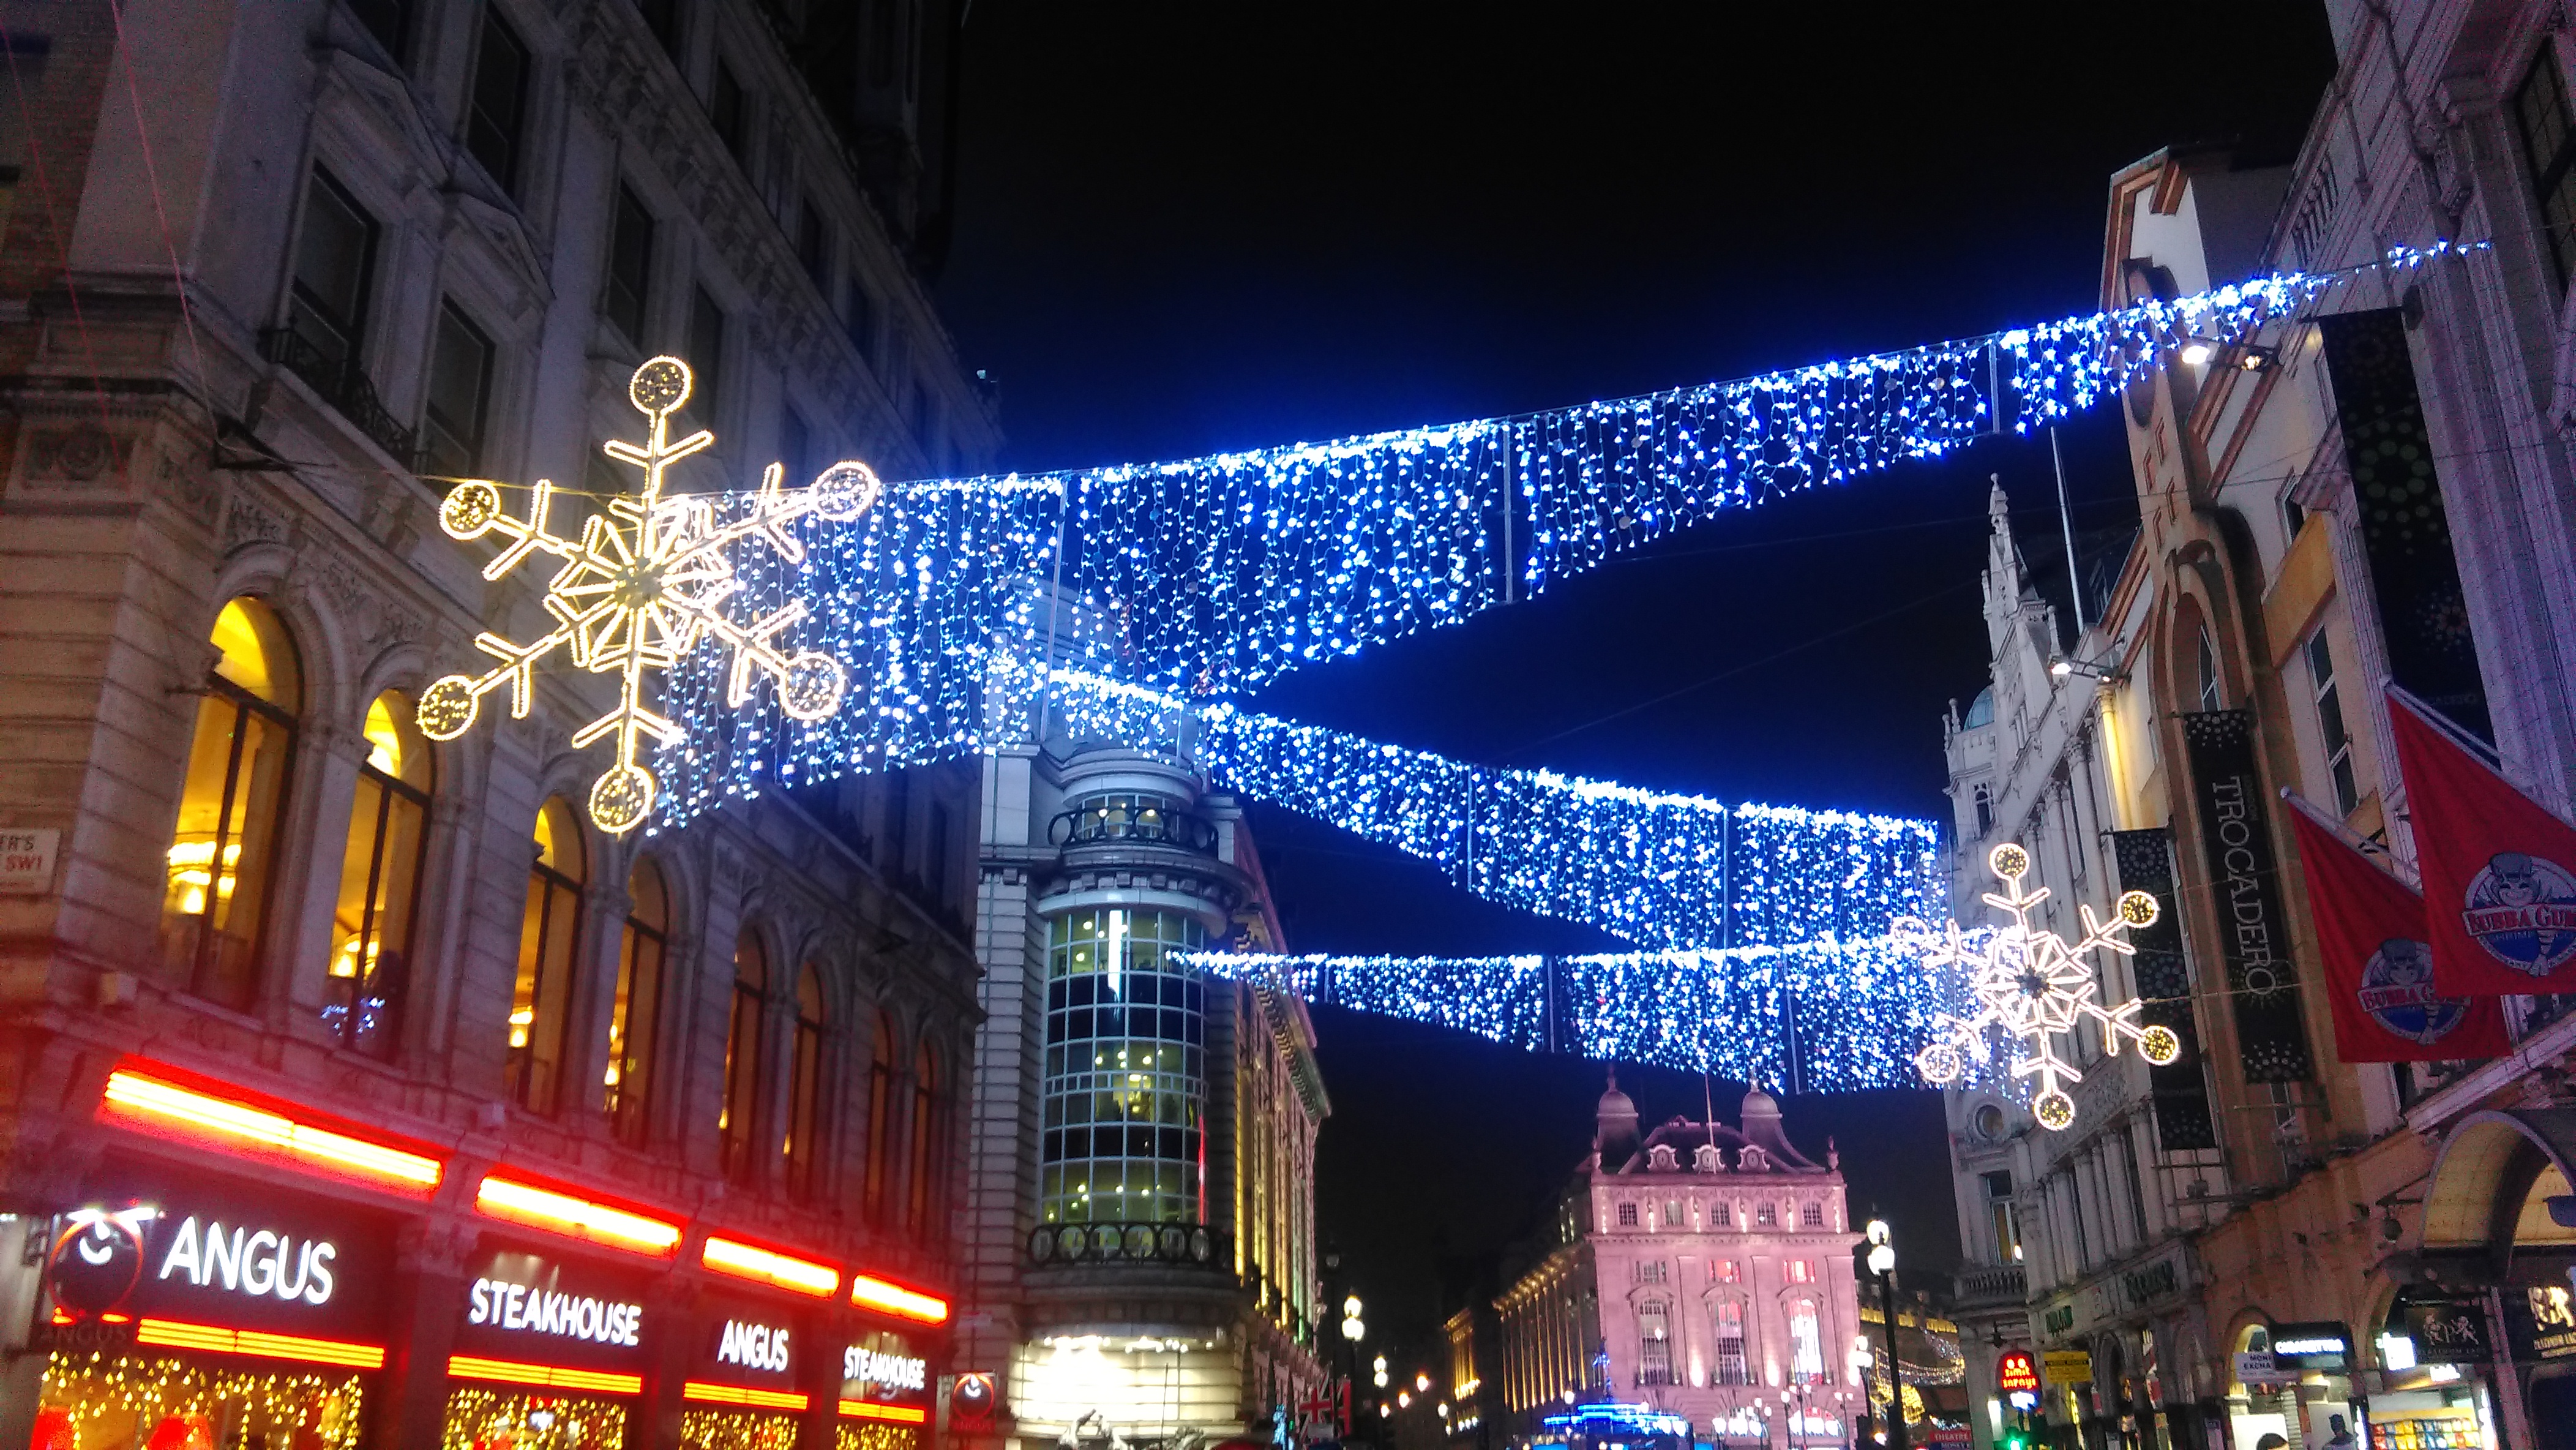 United Kingdom Christmas.File Coventry Street Christmas 2016 Decorations London